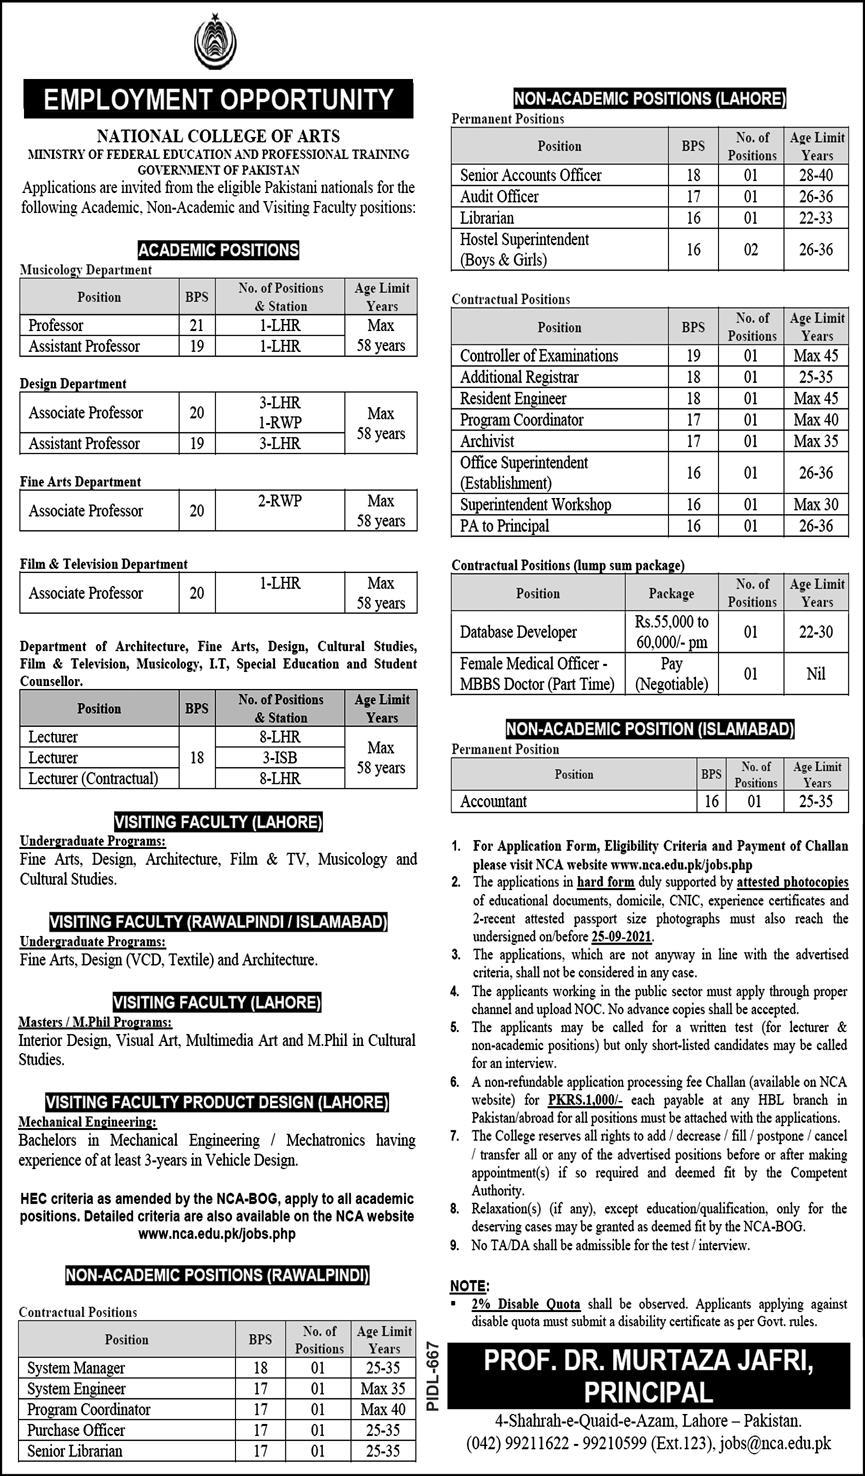 NATIONAL COLLEGE OF ARTS JOBS 2021